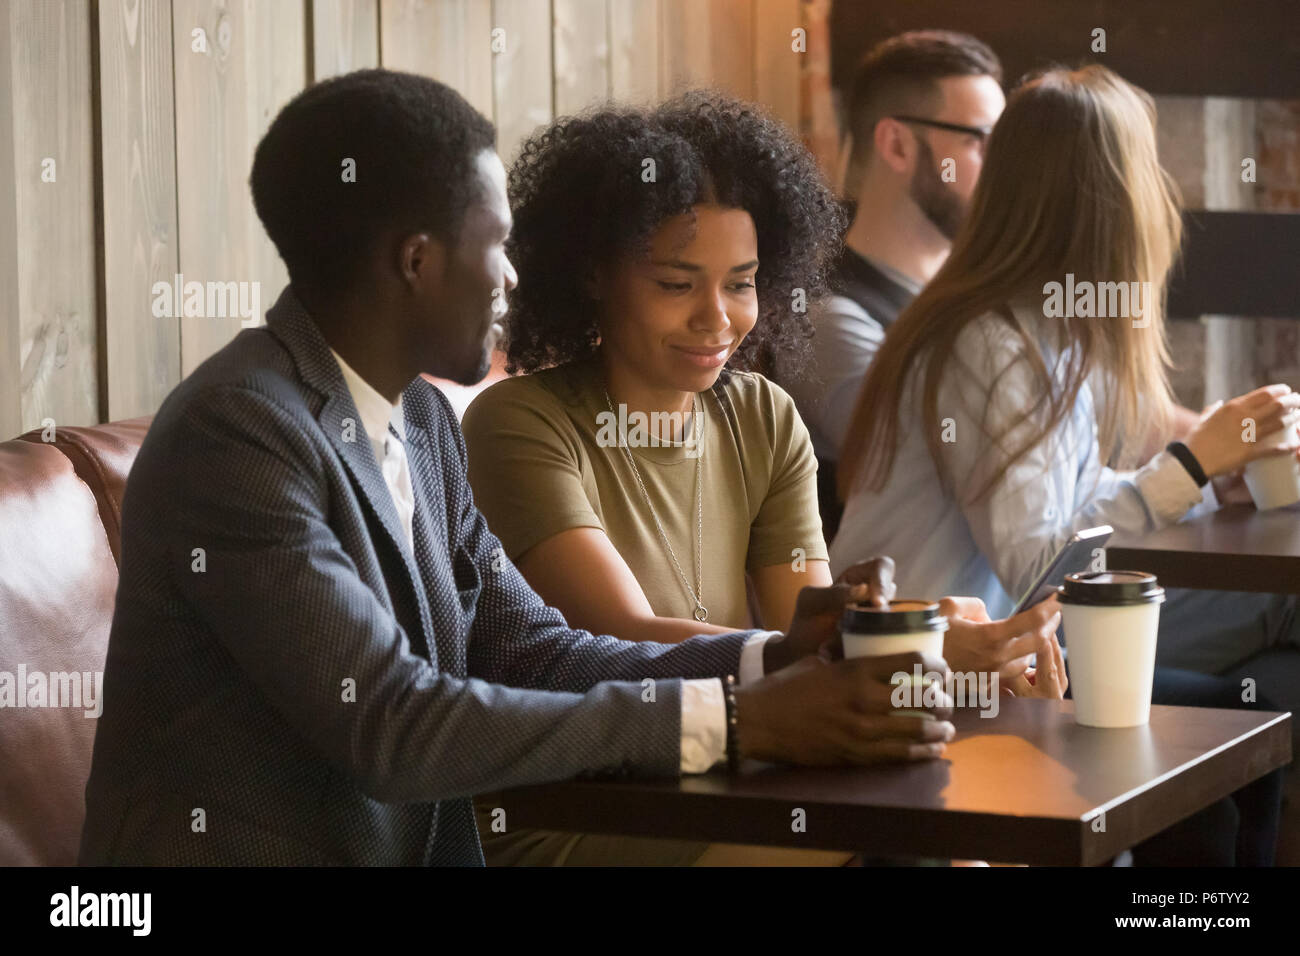 Multiracial people enjoying coffee to go during break in cafe - Stock Image